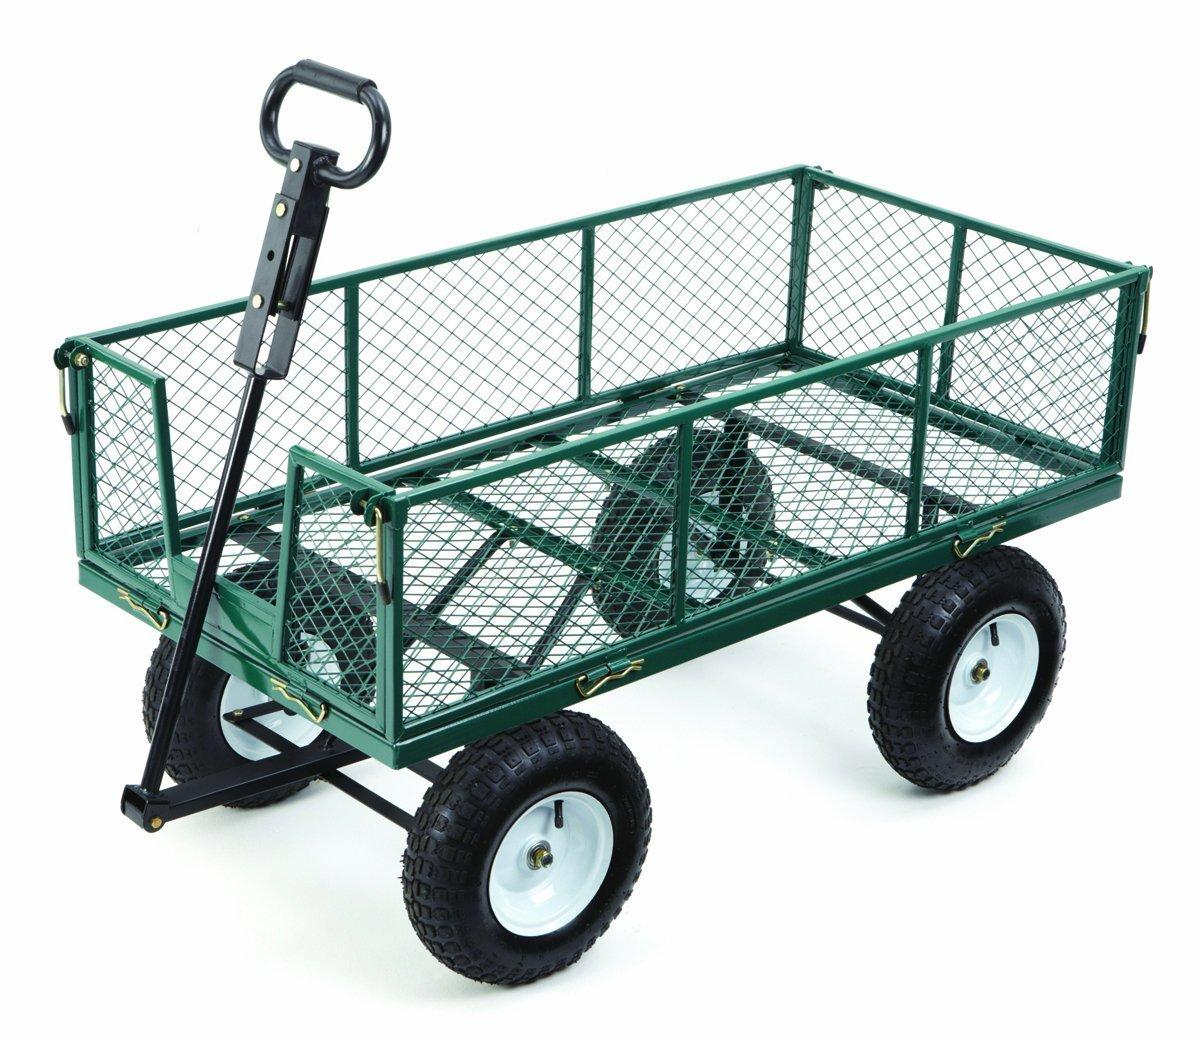 Factory Utility Cart: Amazon.com : Farm & Ranch MH2121D Heavy-Duty Steel Utility